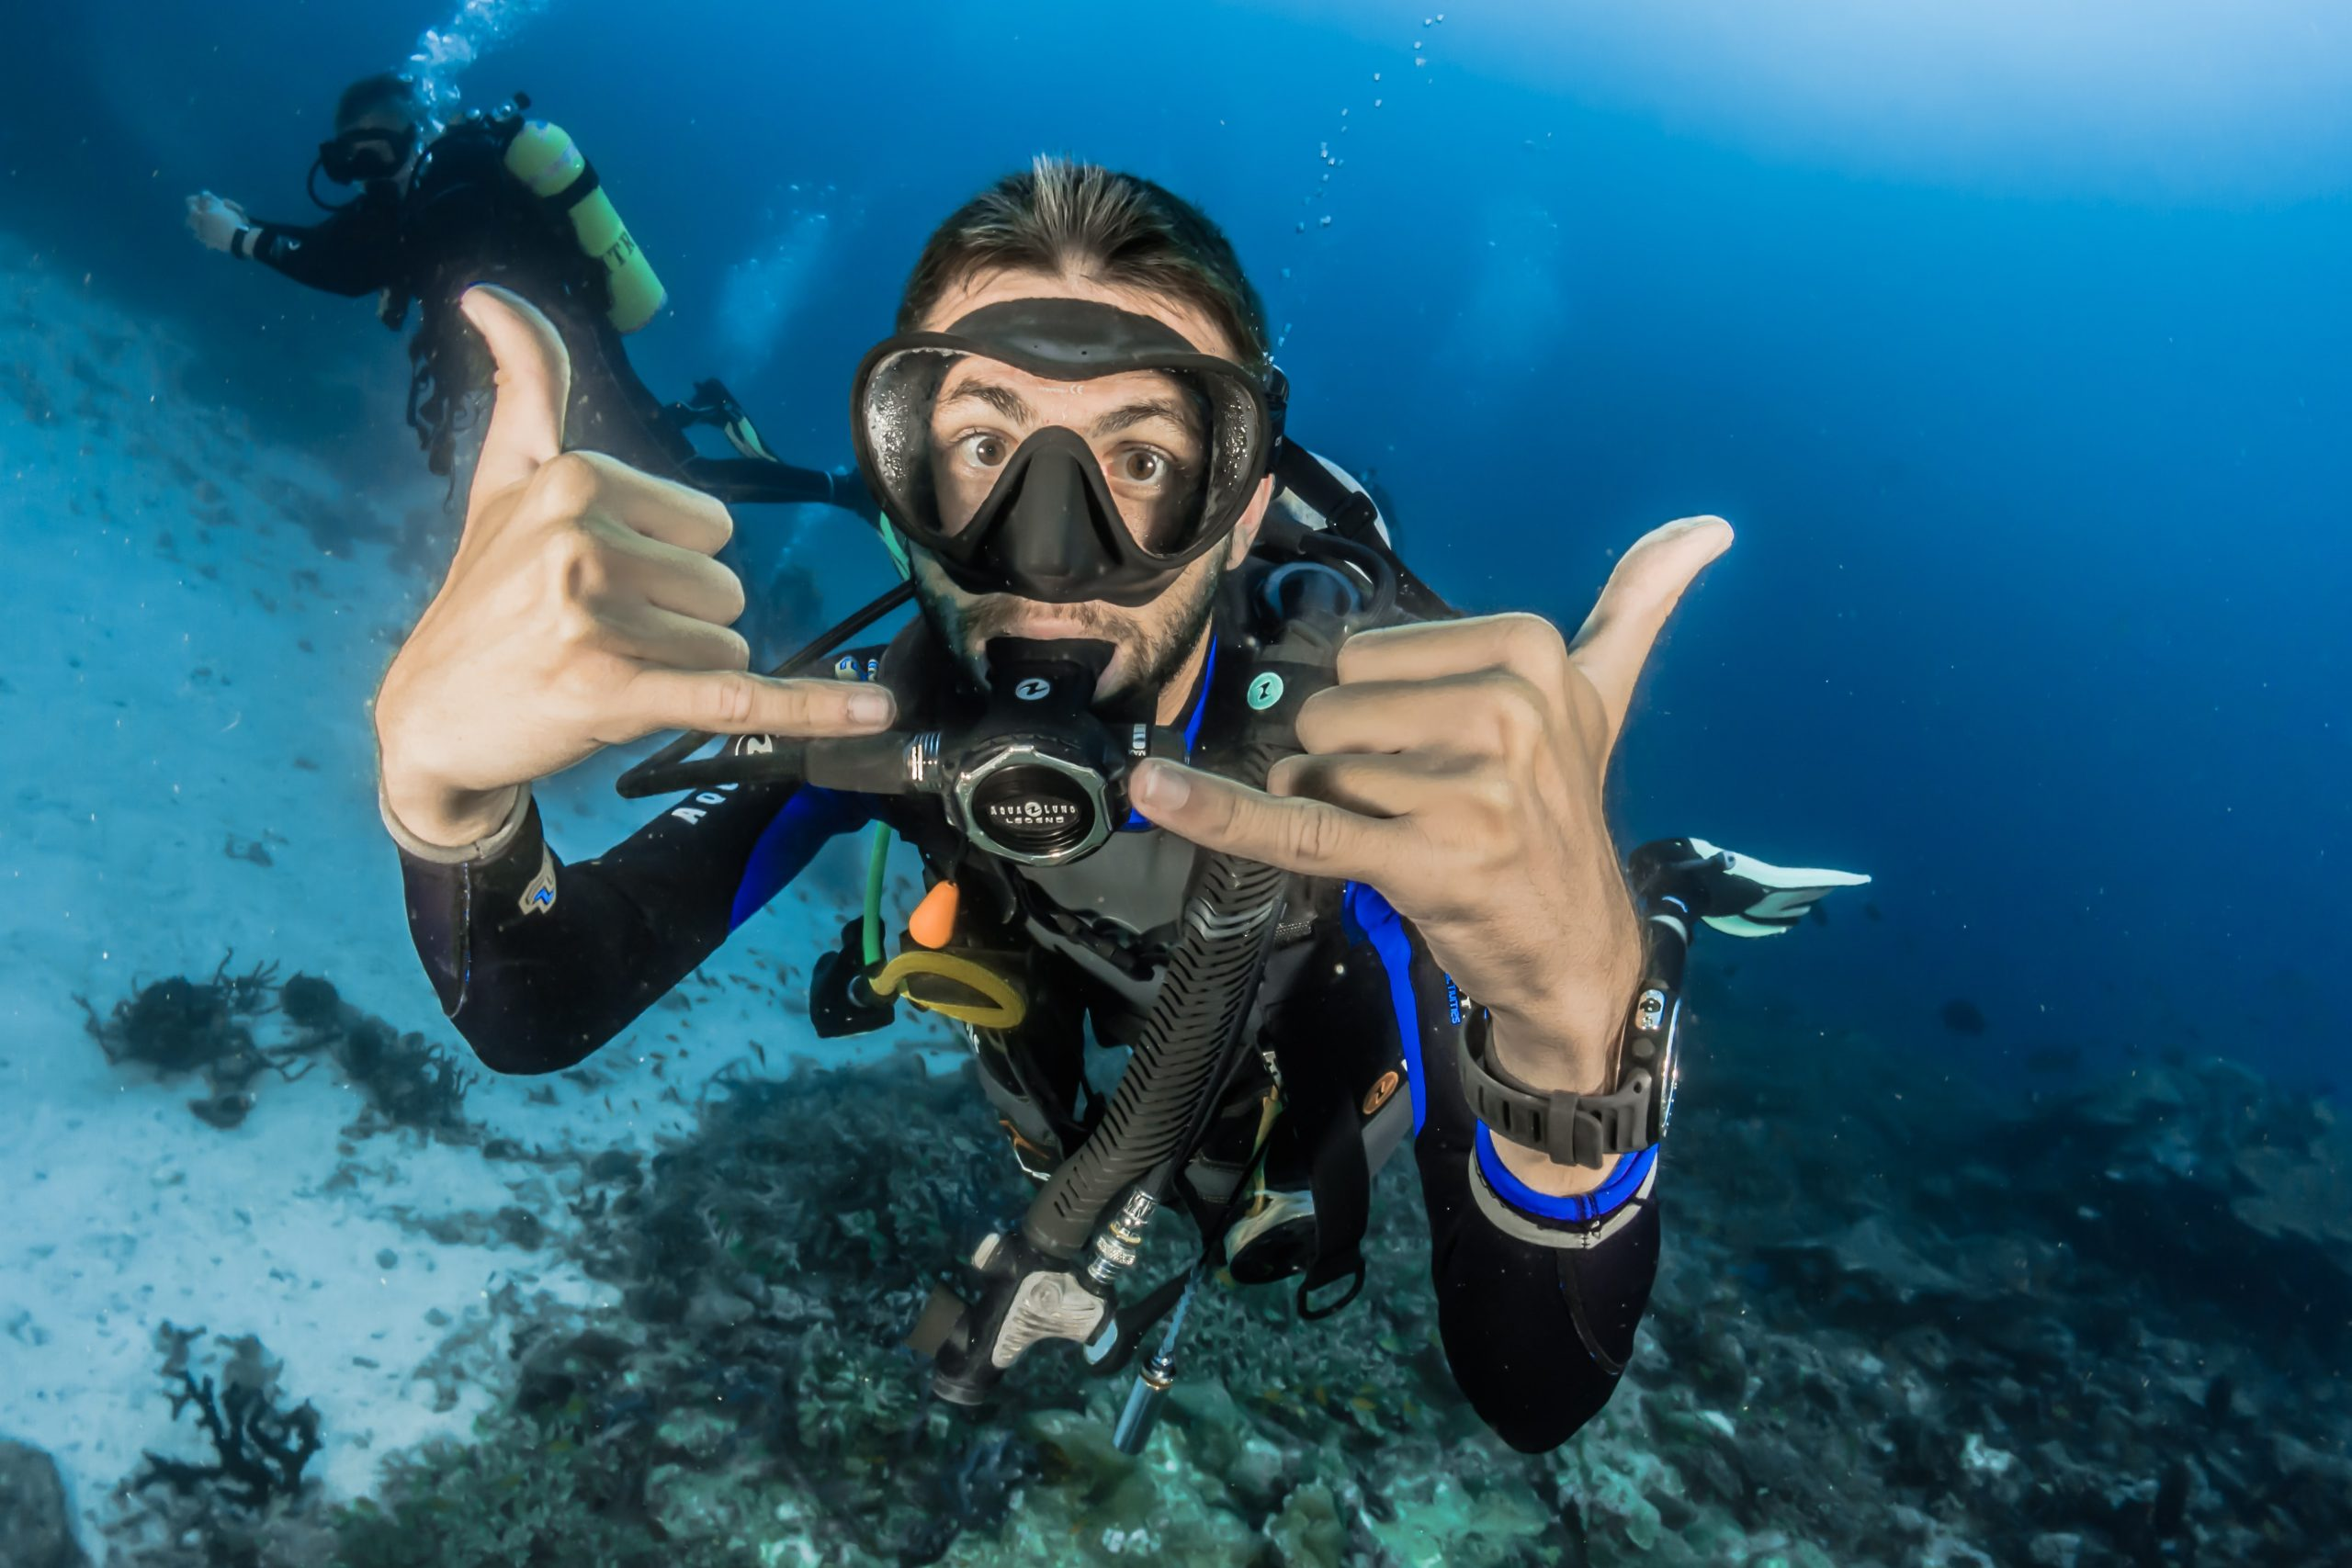 sebastian pena lambarri 44r12Ck CoI unsplash scaled - Scuba Diving: All You Need To Know About It